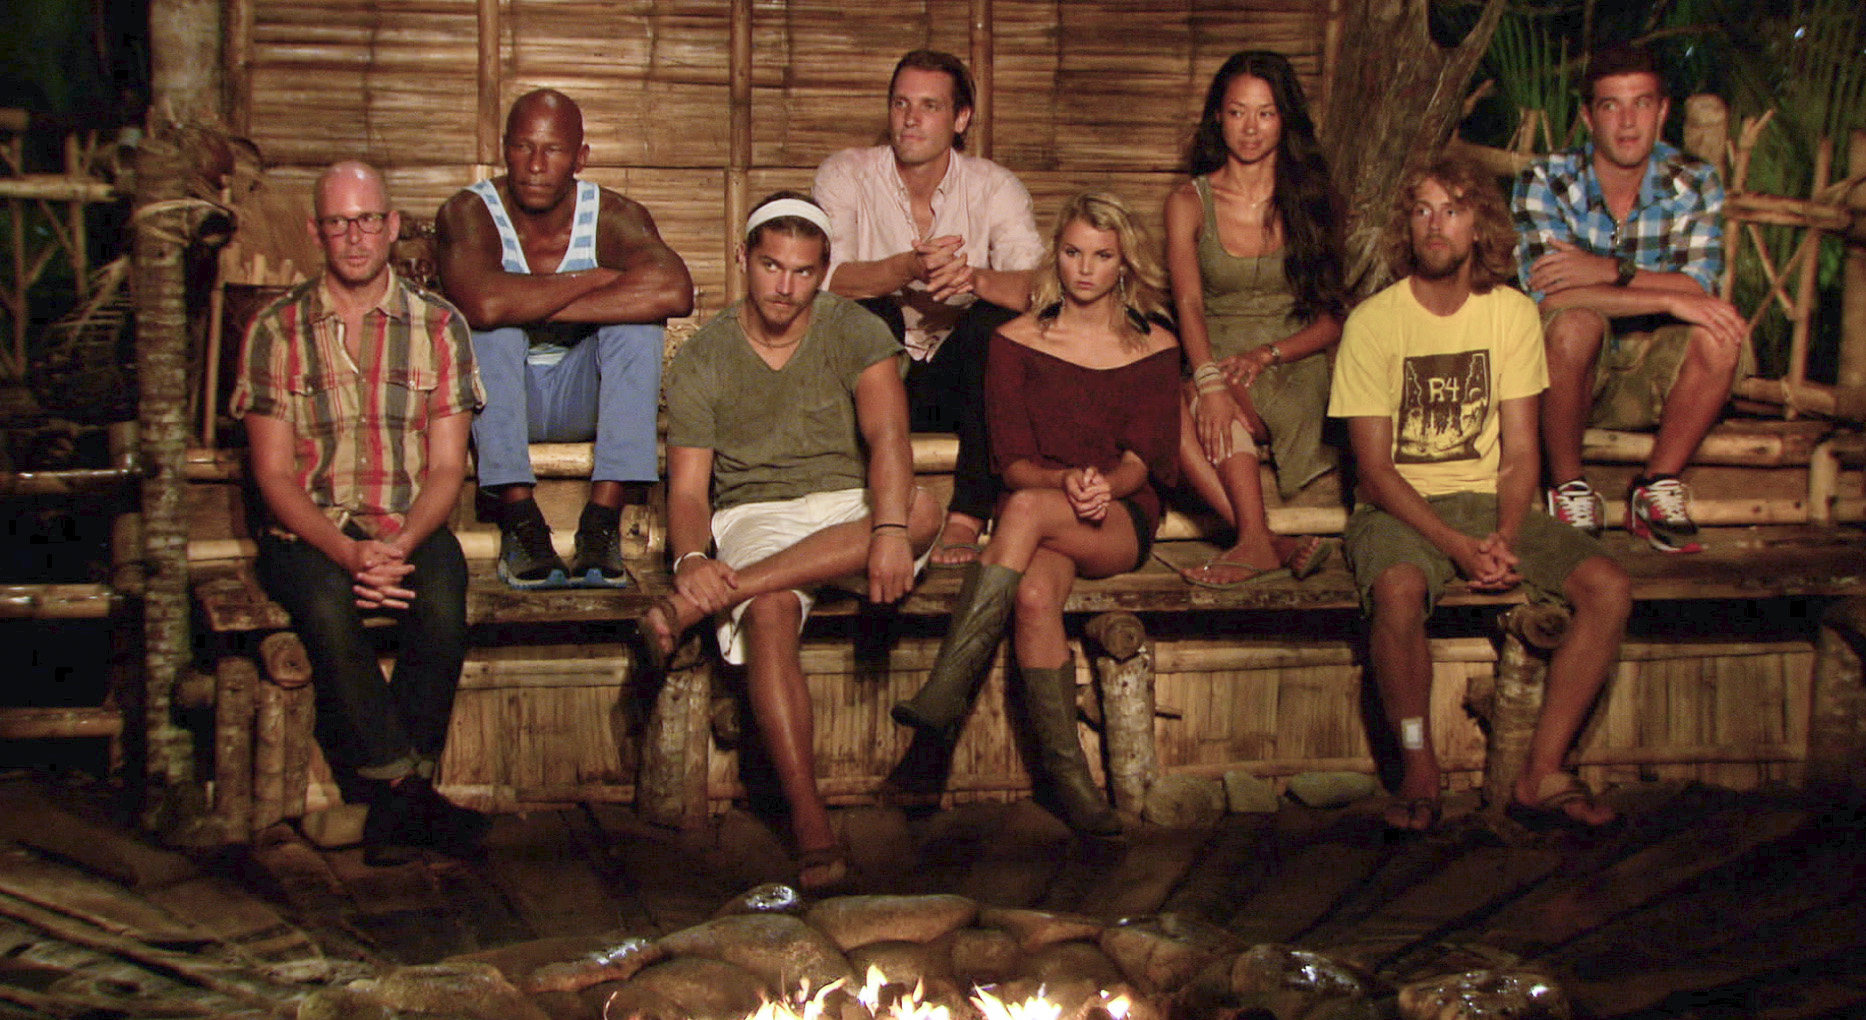 The jury in the Season 26 Finale